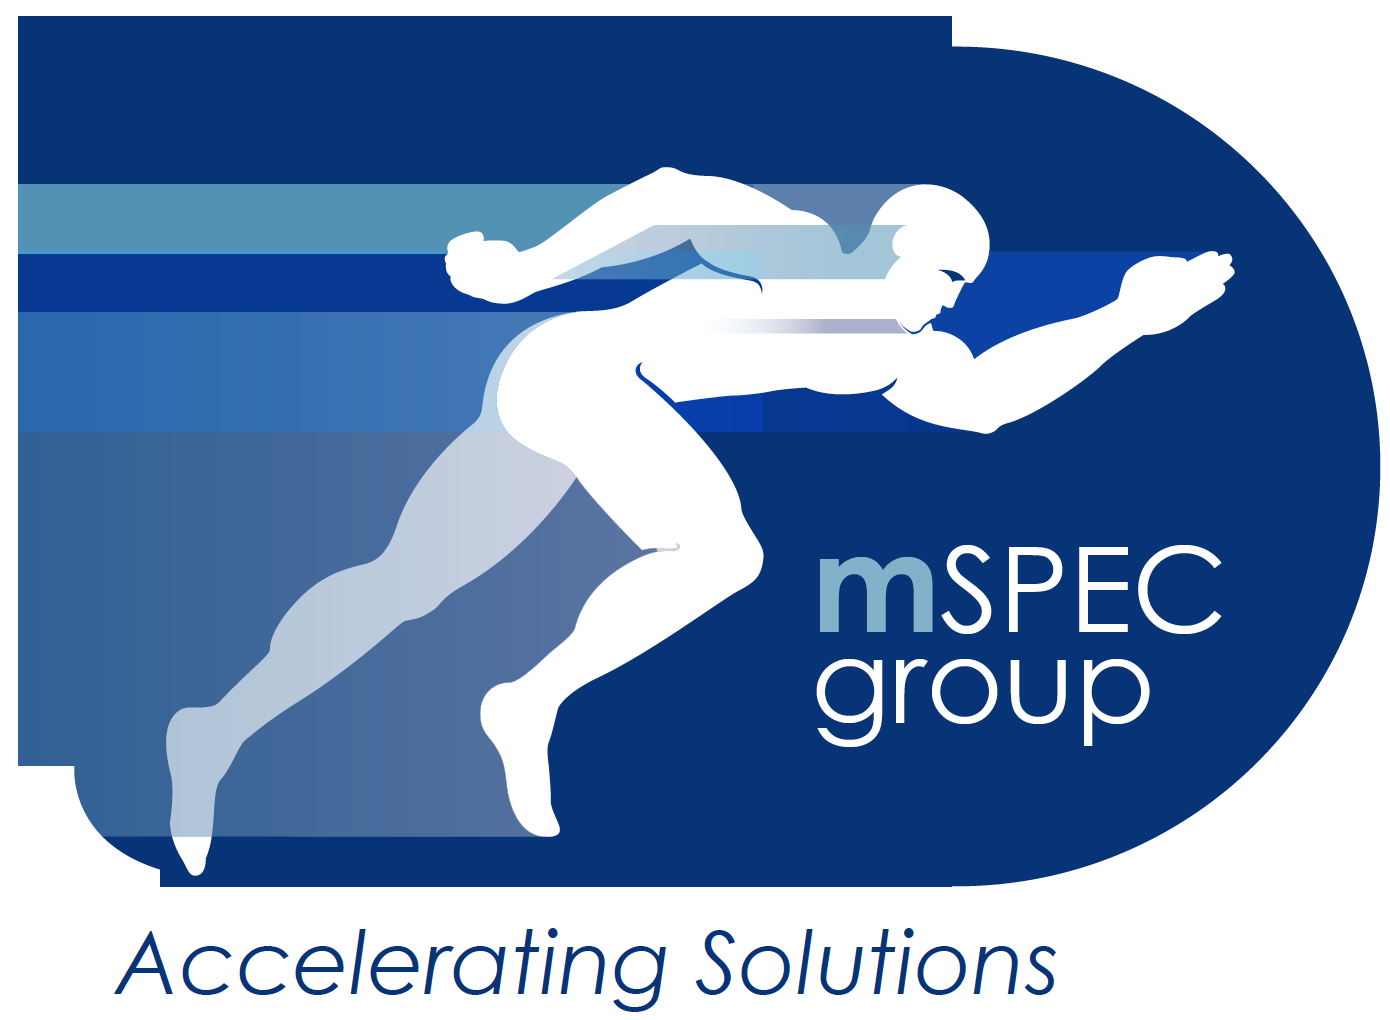 mSPEC Group